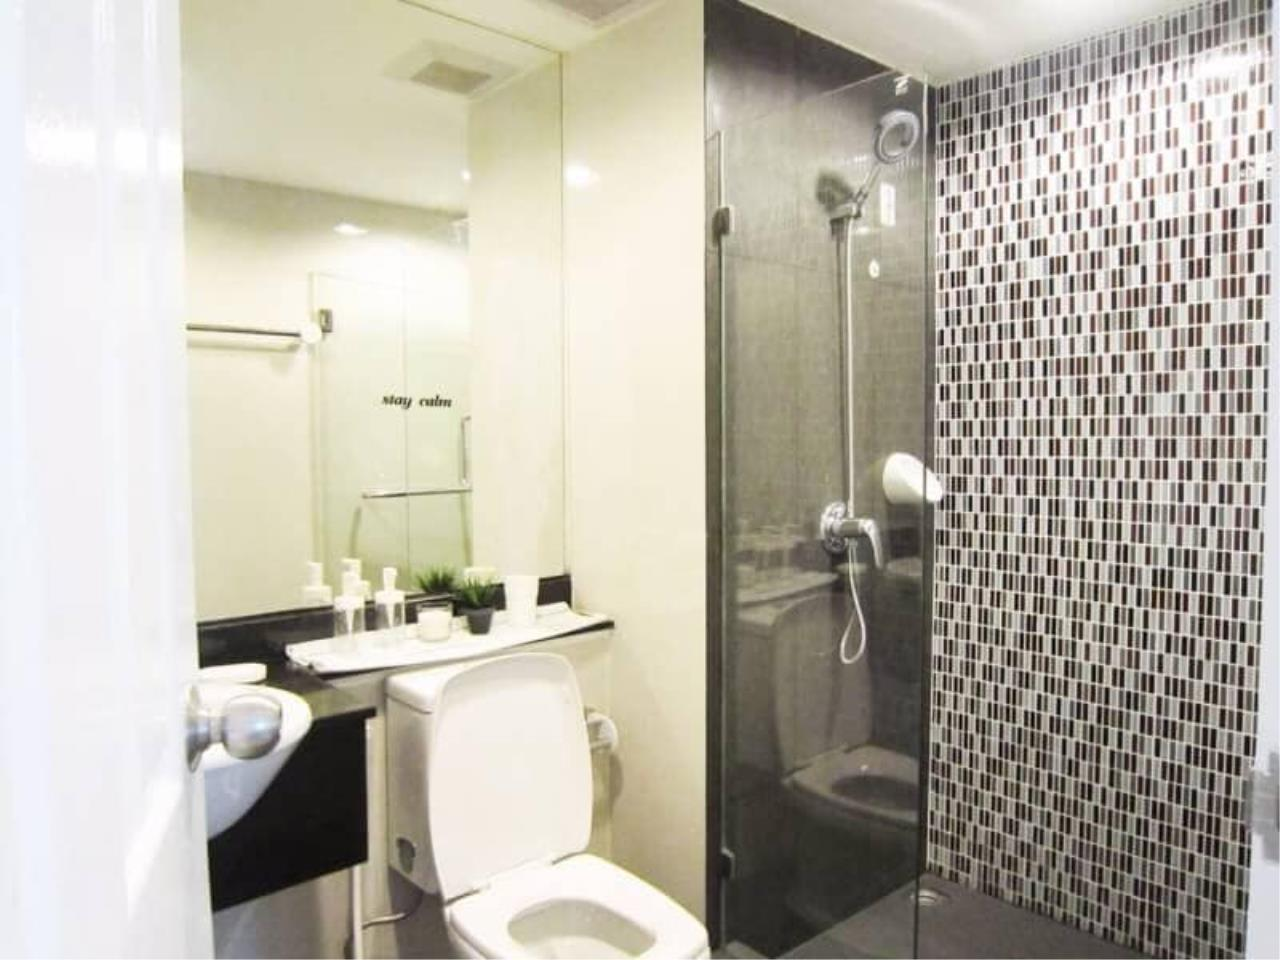 Agent Thawanrat Agency's Condo for rental Chateau In Town Ratchada 19 Near MRT.Ratchadaphisek 1 bedroom,1 bathroom. size 41 sqm. fully furnished Ready to move in 6